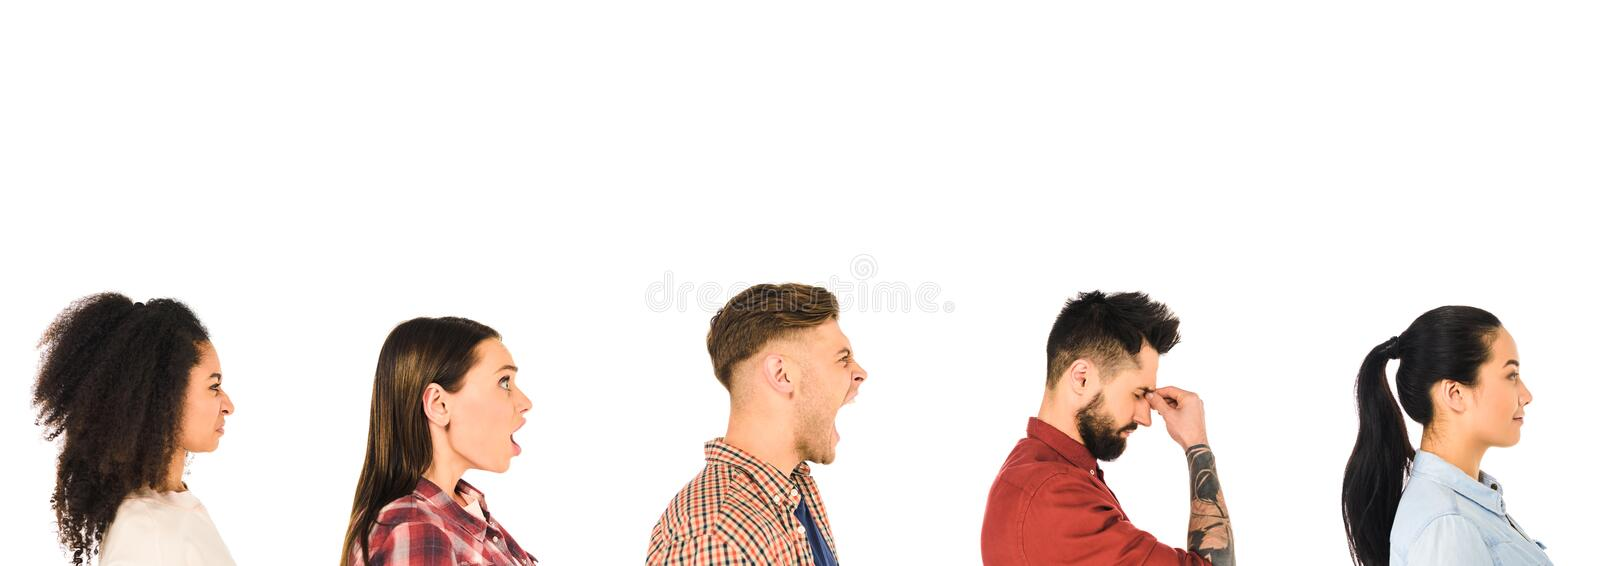 profile of milticultural group of people with face expression isolated stock image